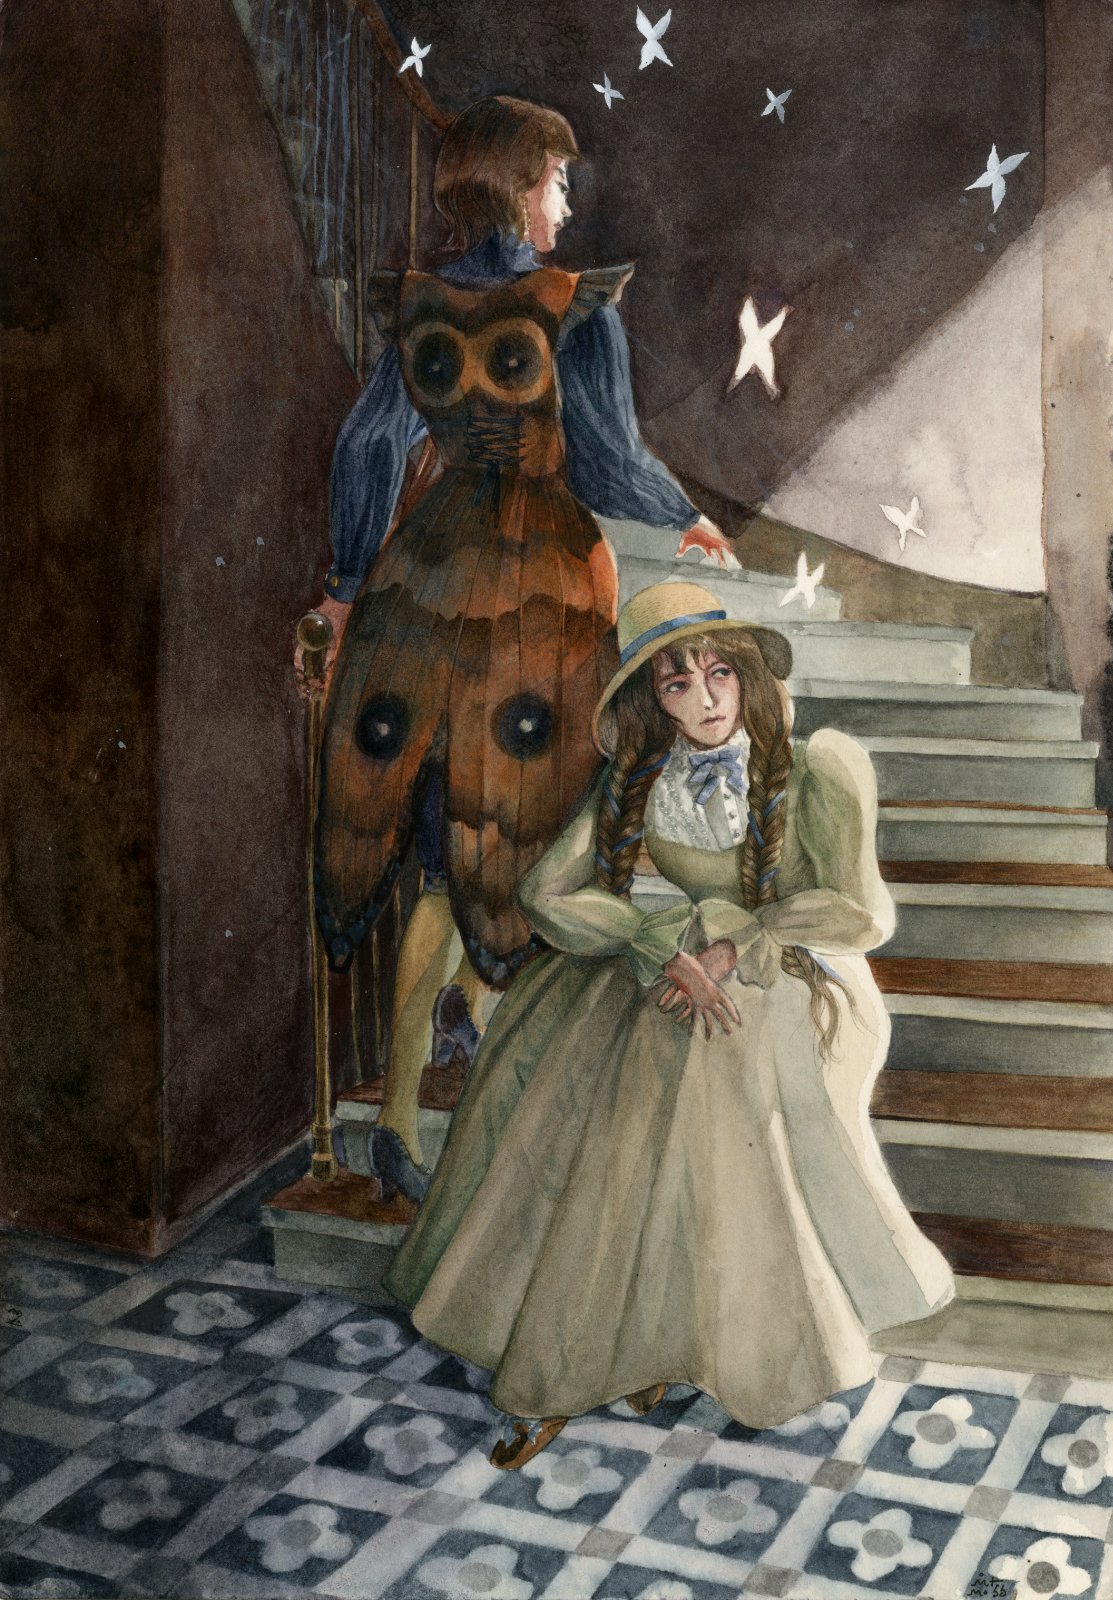 Two women, one in an edwardian dress, the other one in a jacket that looks like a butterfly, are sitting in the hall of an old building with pretty tiles on the floor.